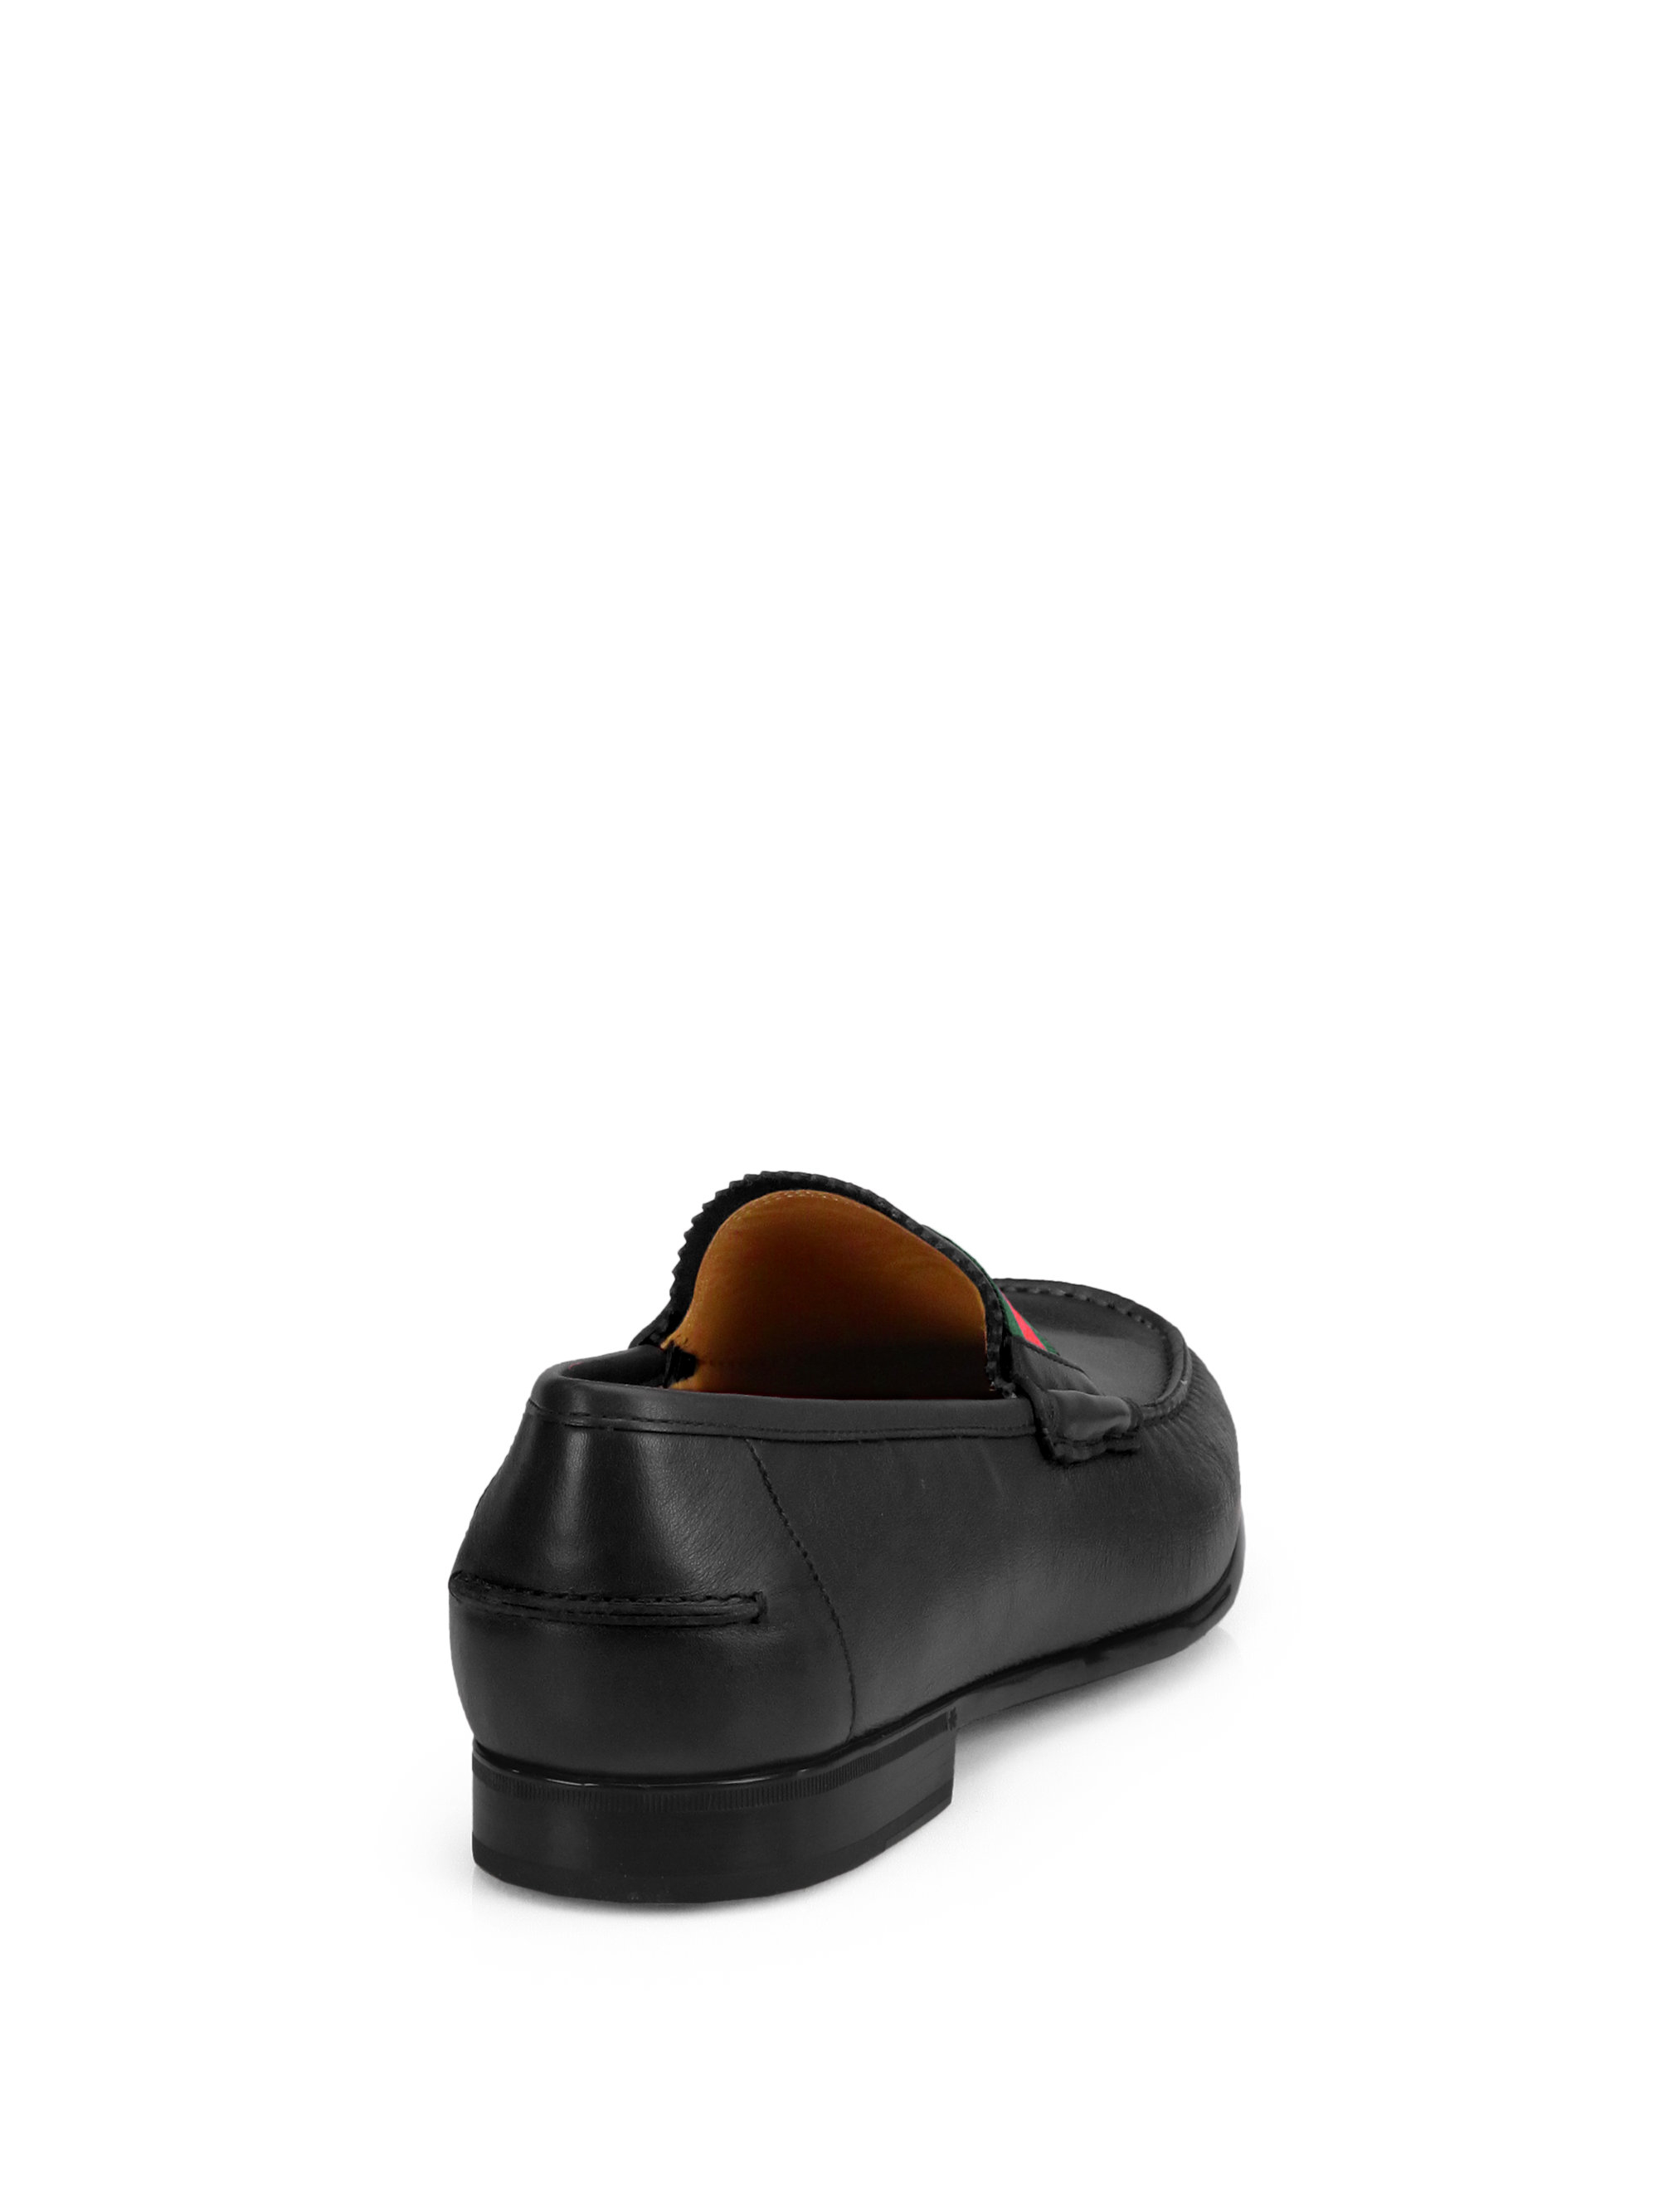 f72a802f7f2 Lyst - Gucci Frederik Leather Loafers in Black for Men